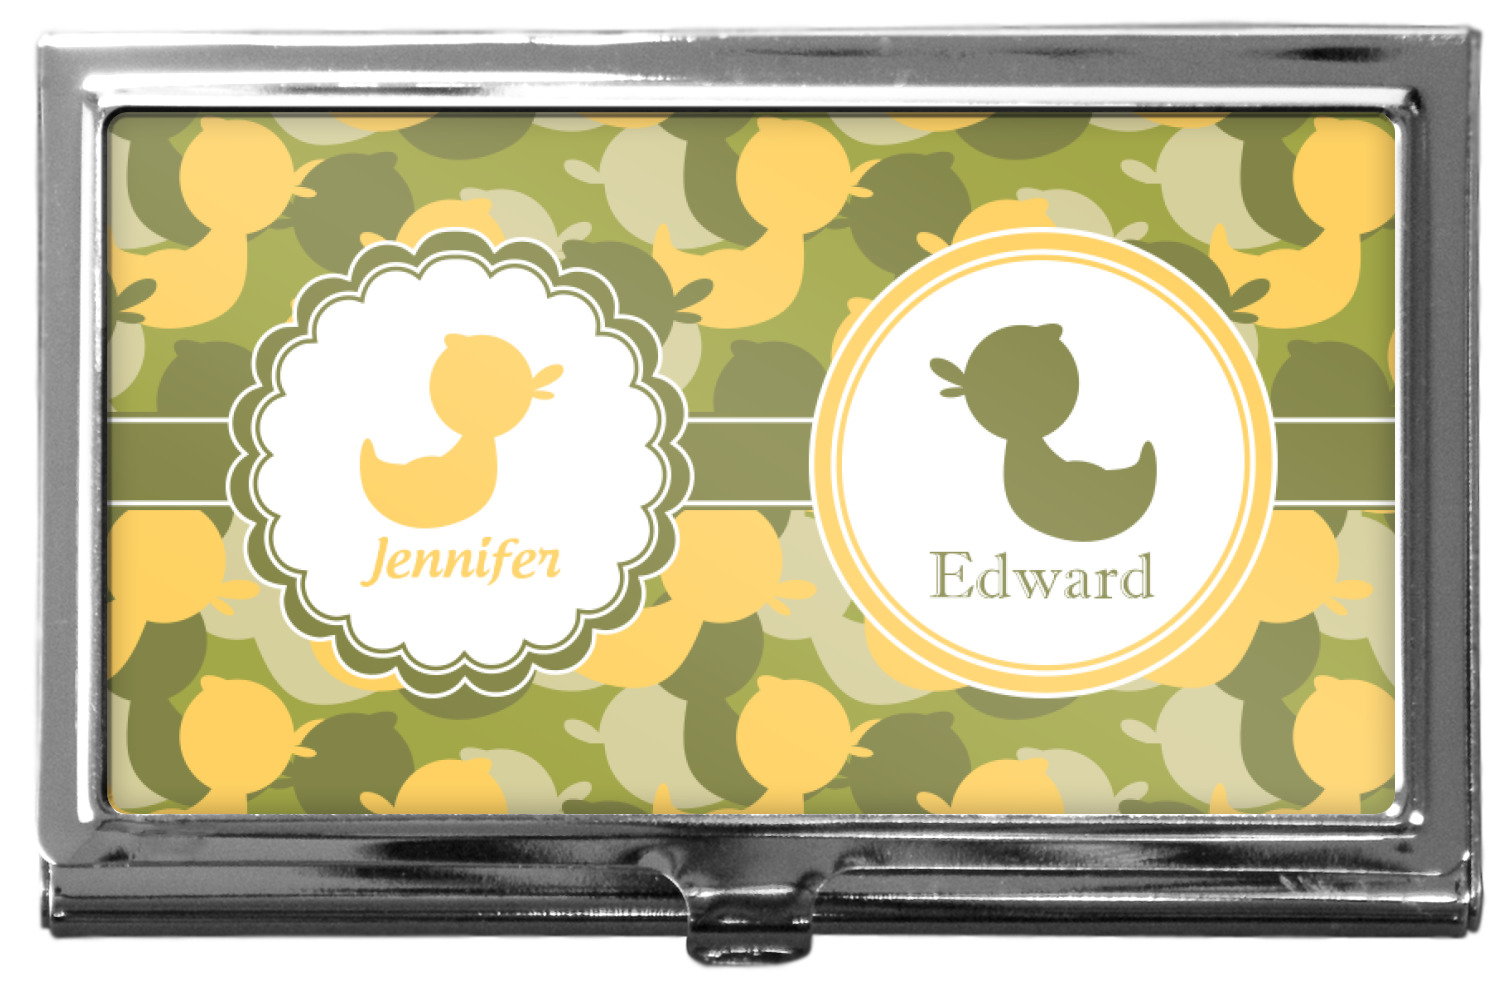 Rubber duckie camo business card holder youcustomizeit rubber duckie camo business card holder colourmoves